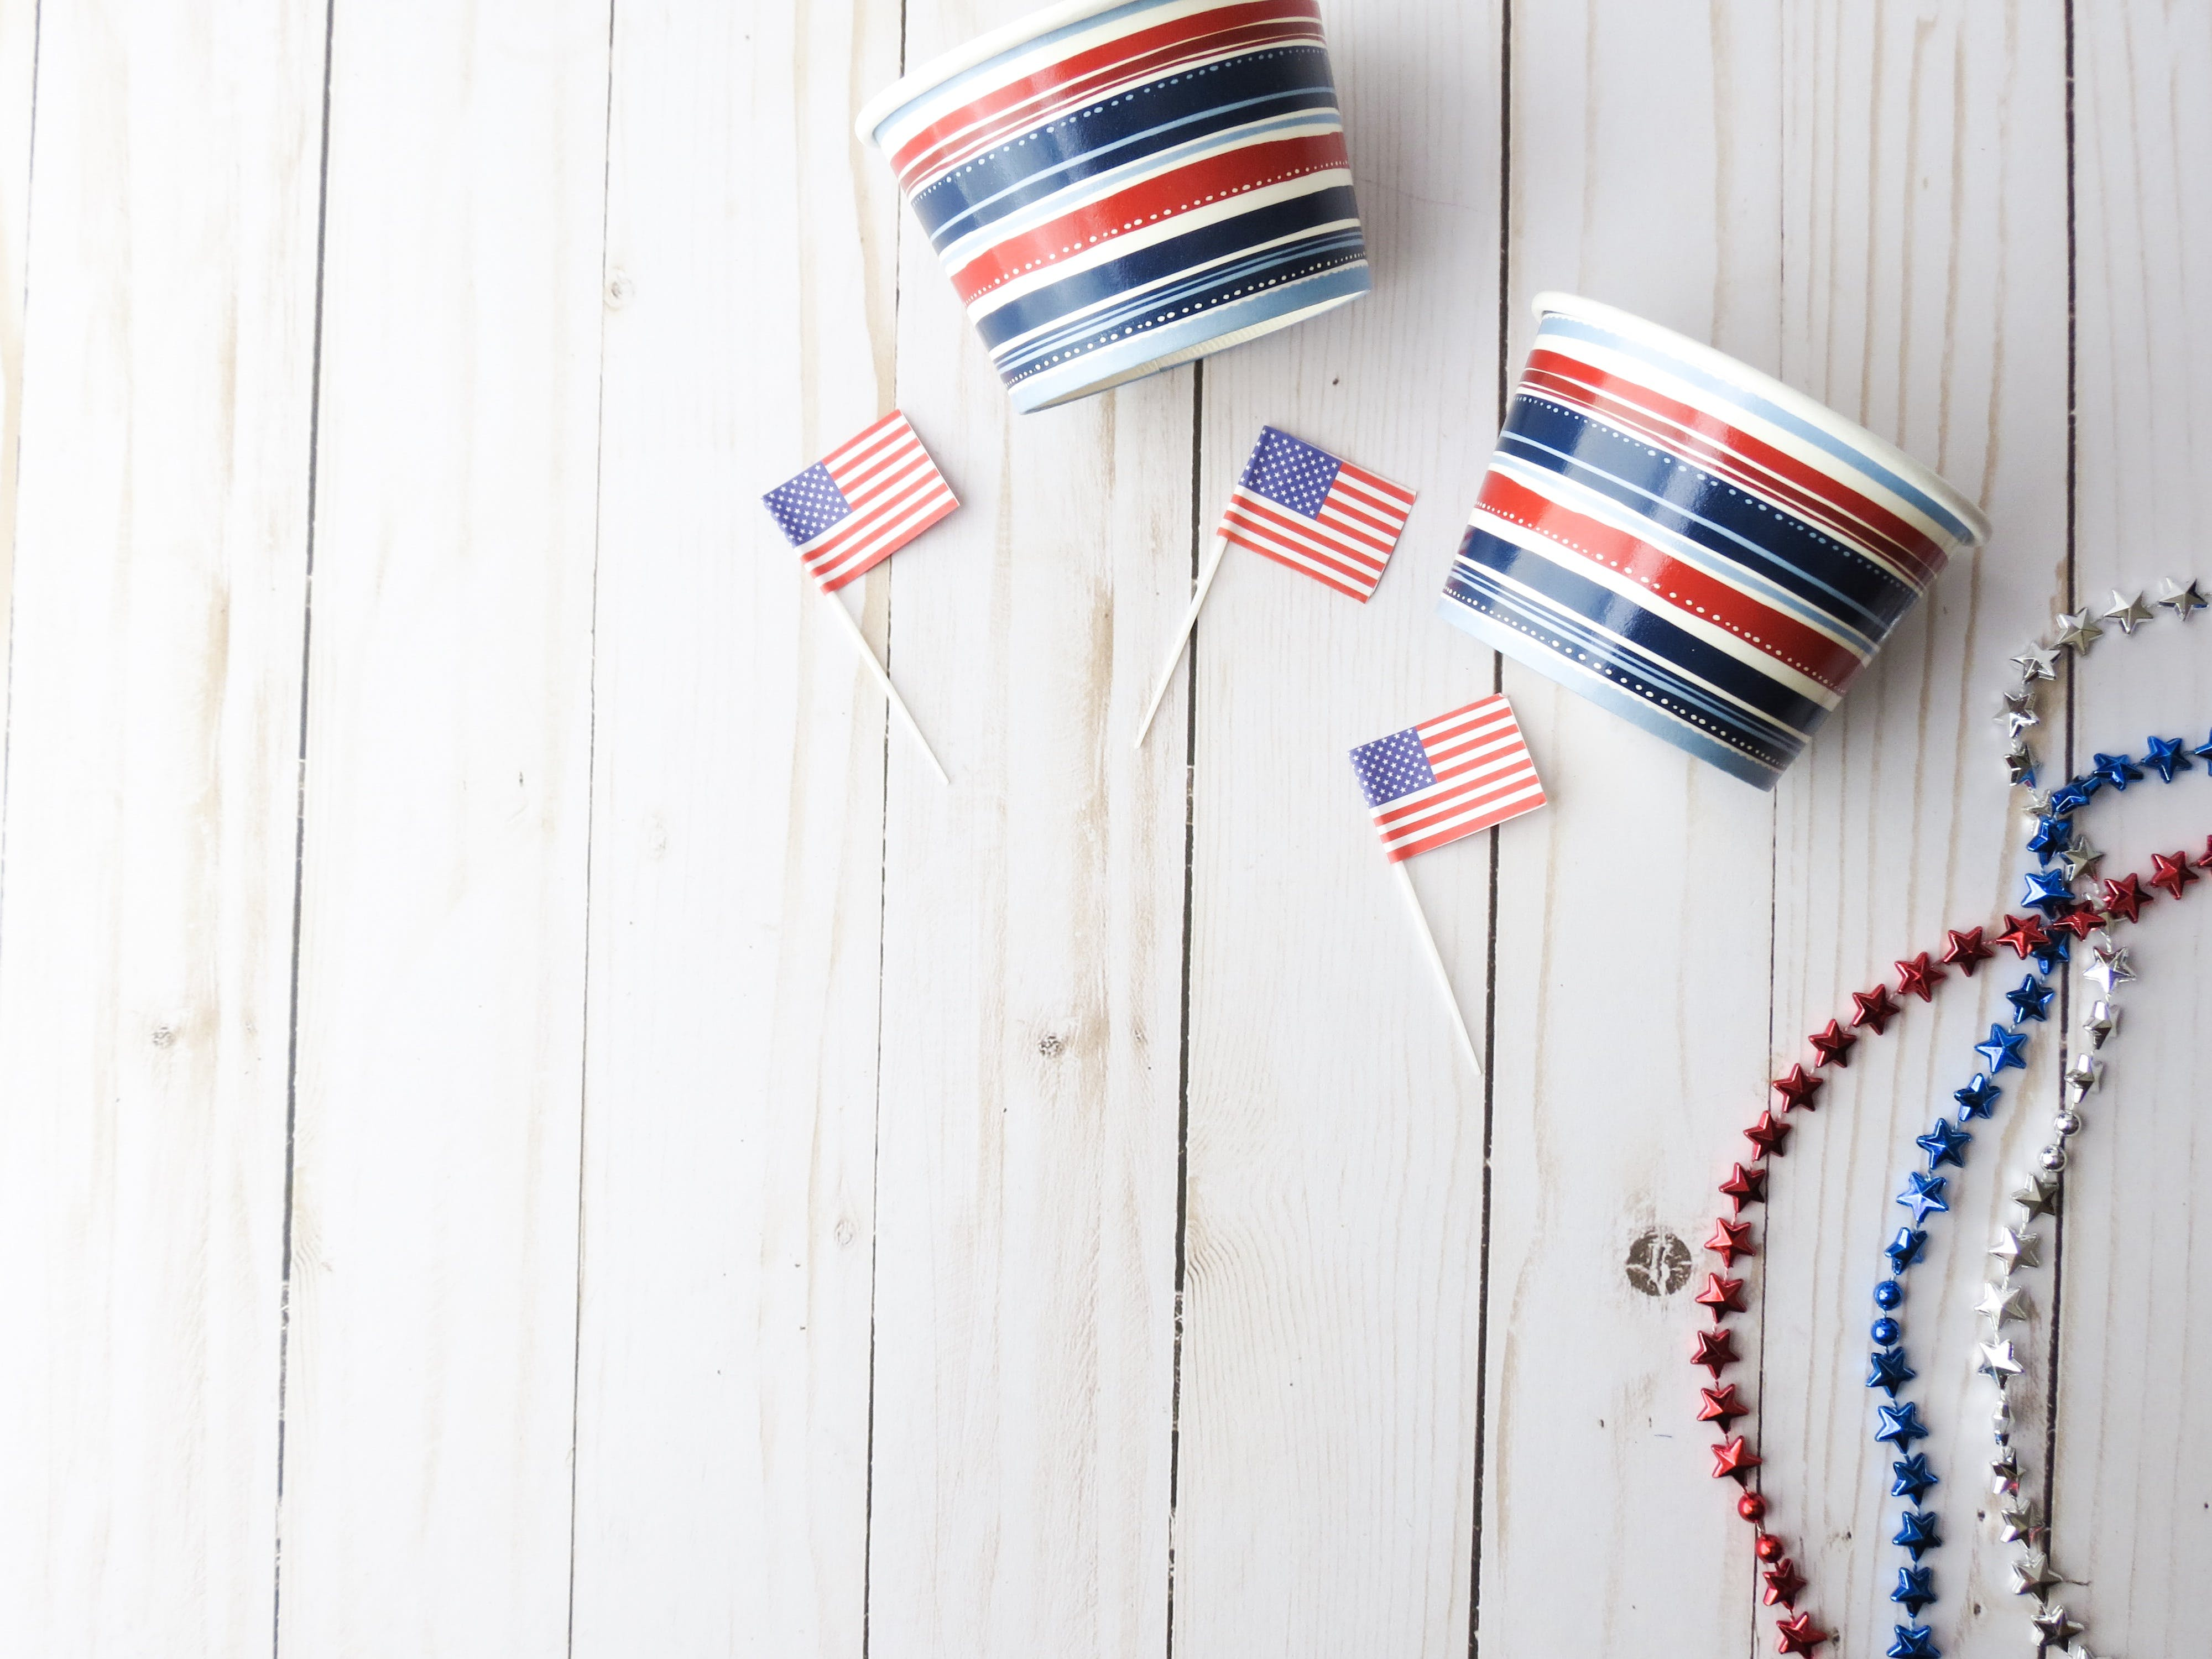 Free stock photo of 4th of july, america, American flag, blue